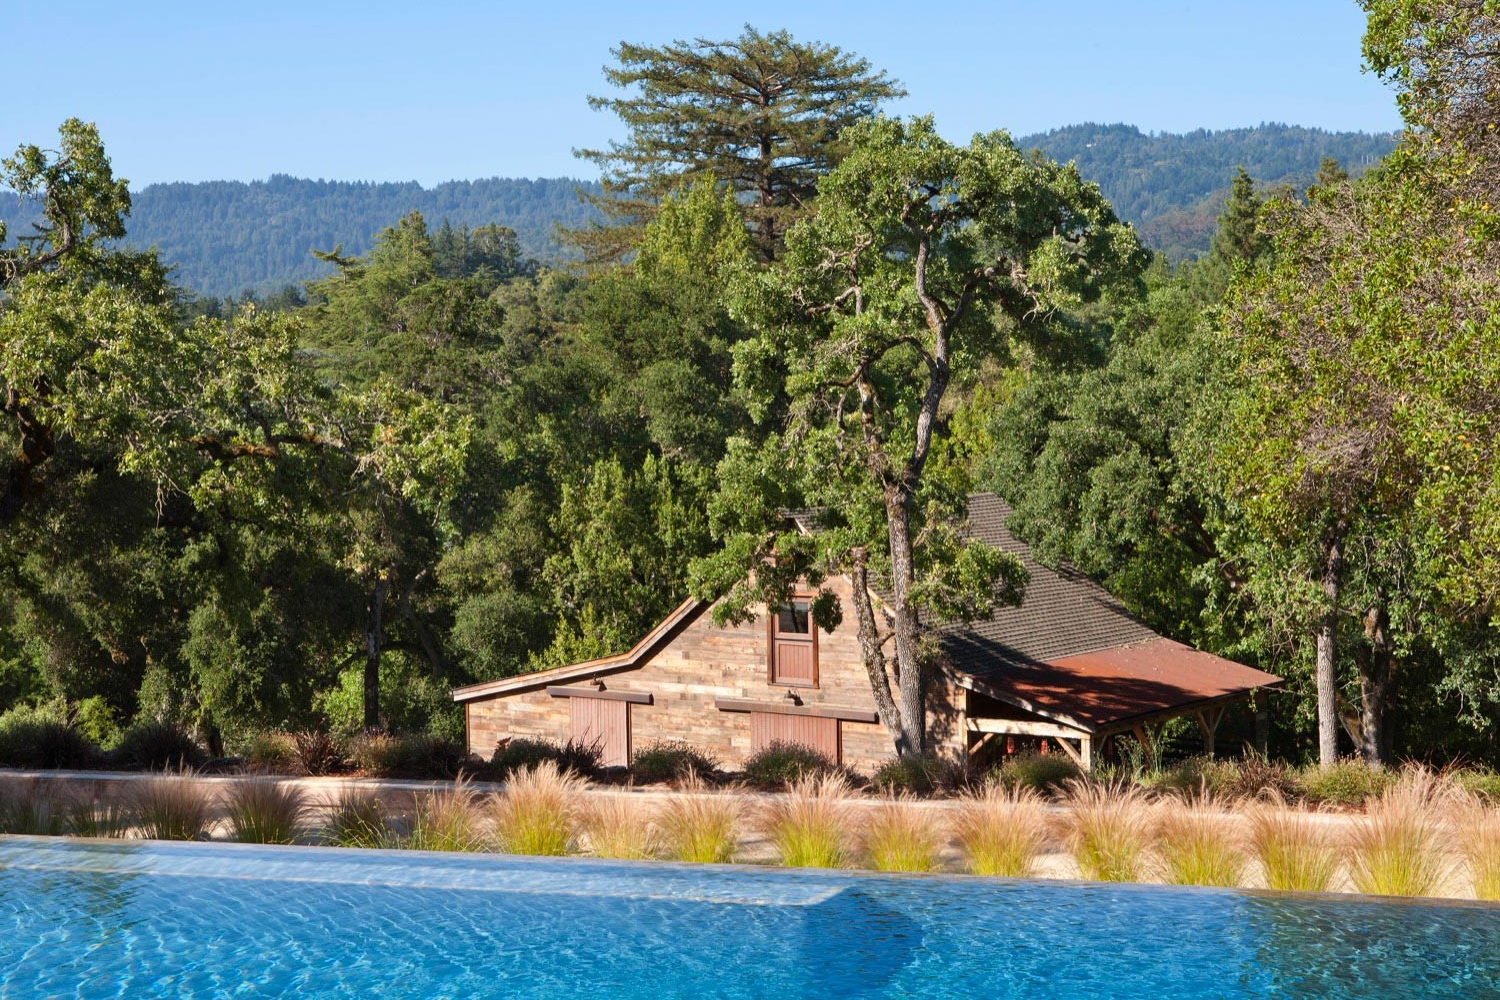 The renovated barn is seen over the pool and native grass plantings.